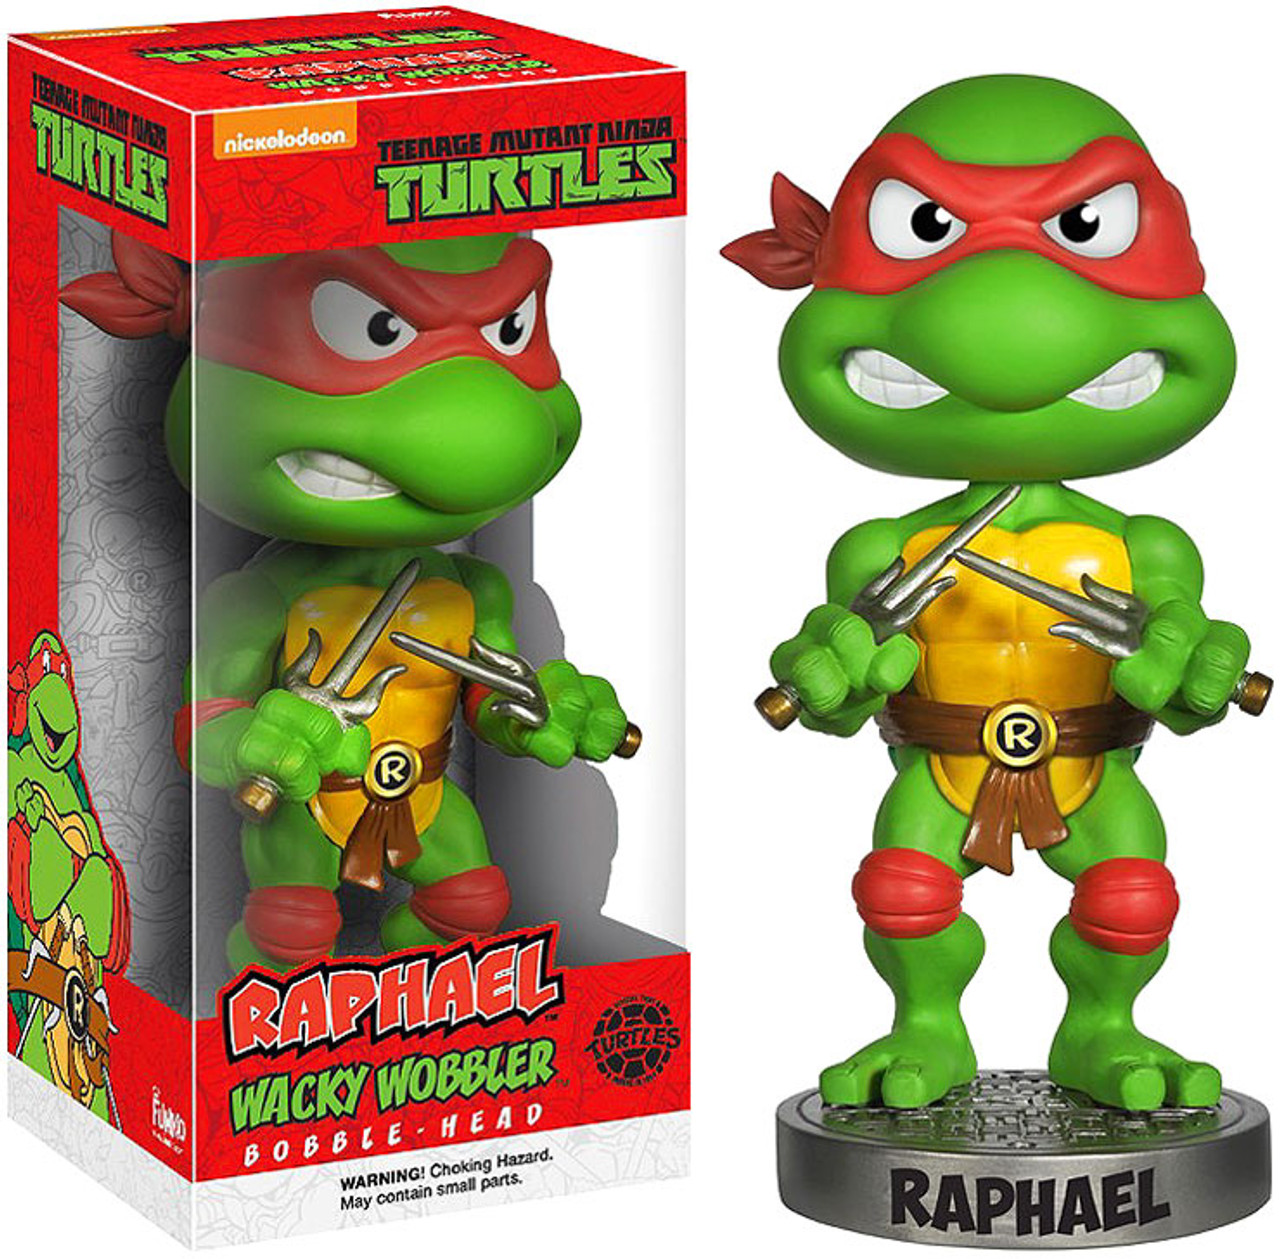 Funko Teenage Mutant Ninja Turtles Wacky Wobbler Raphael Bobble Head